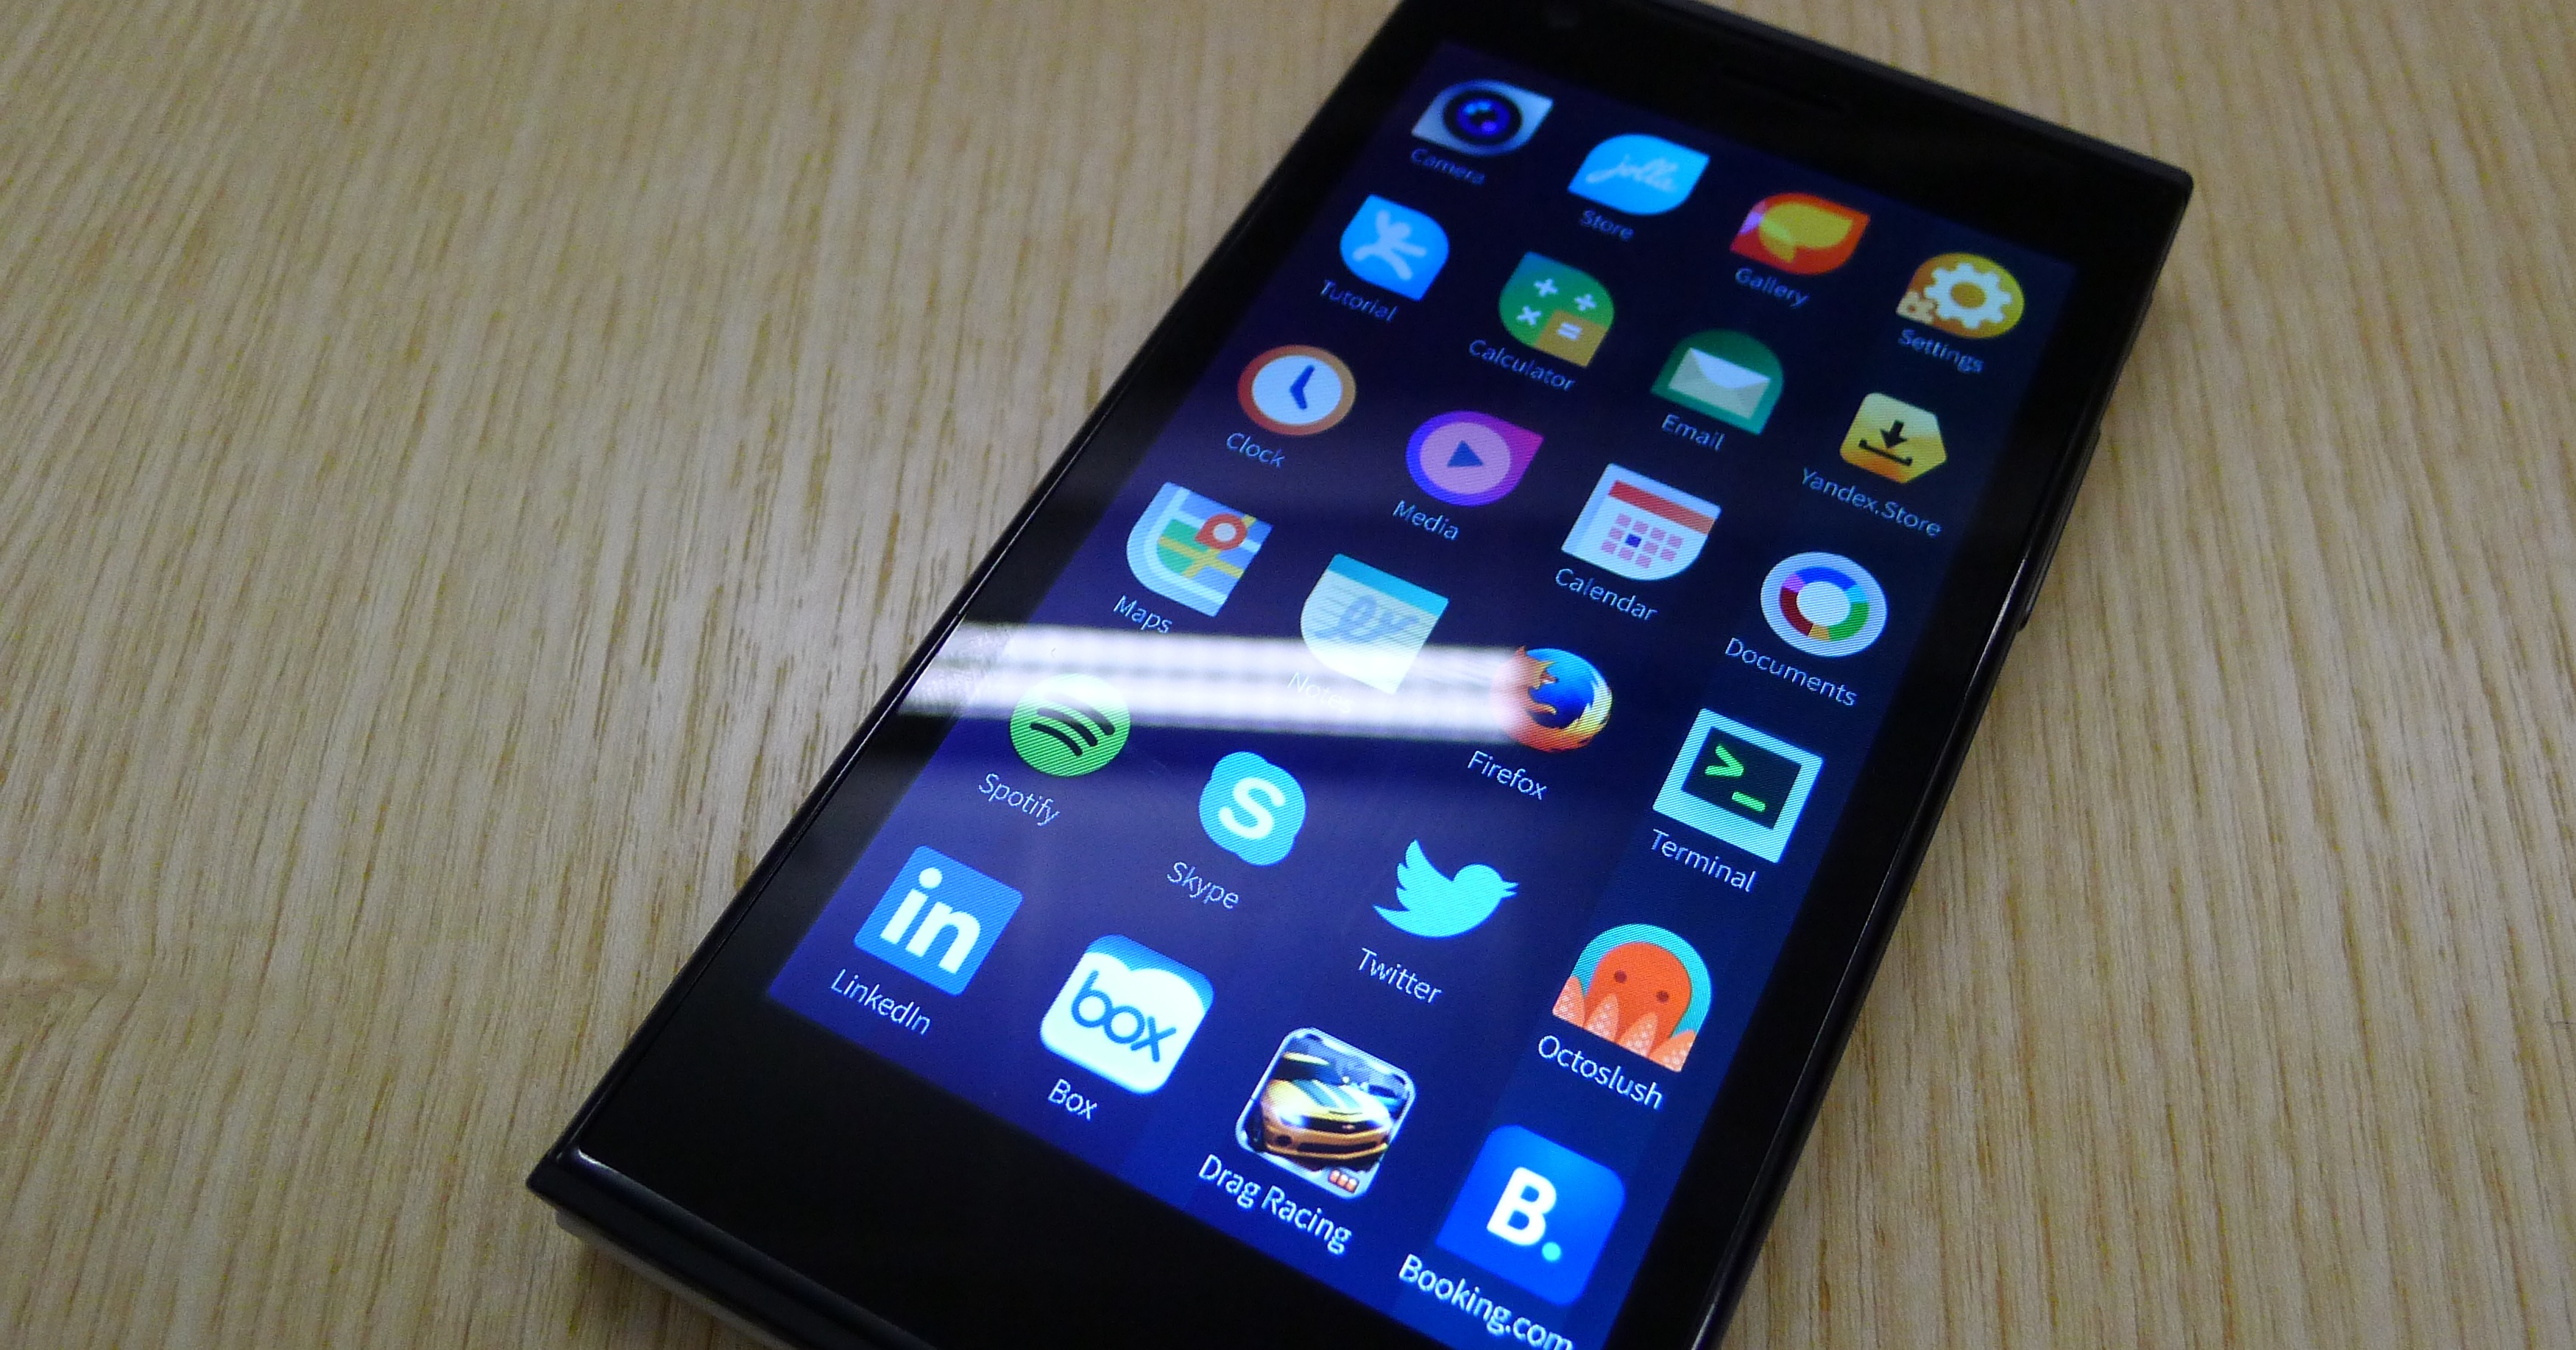 Jolla hands-on: A closer look at the first Sailfish OS-powered smartphone